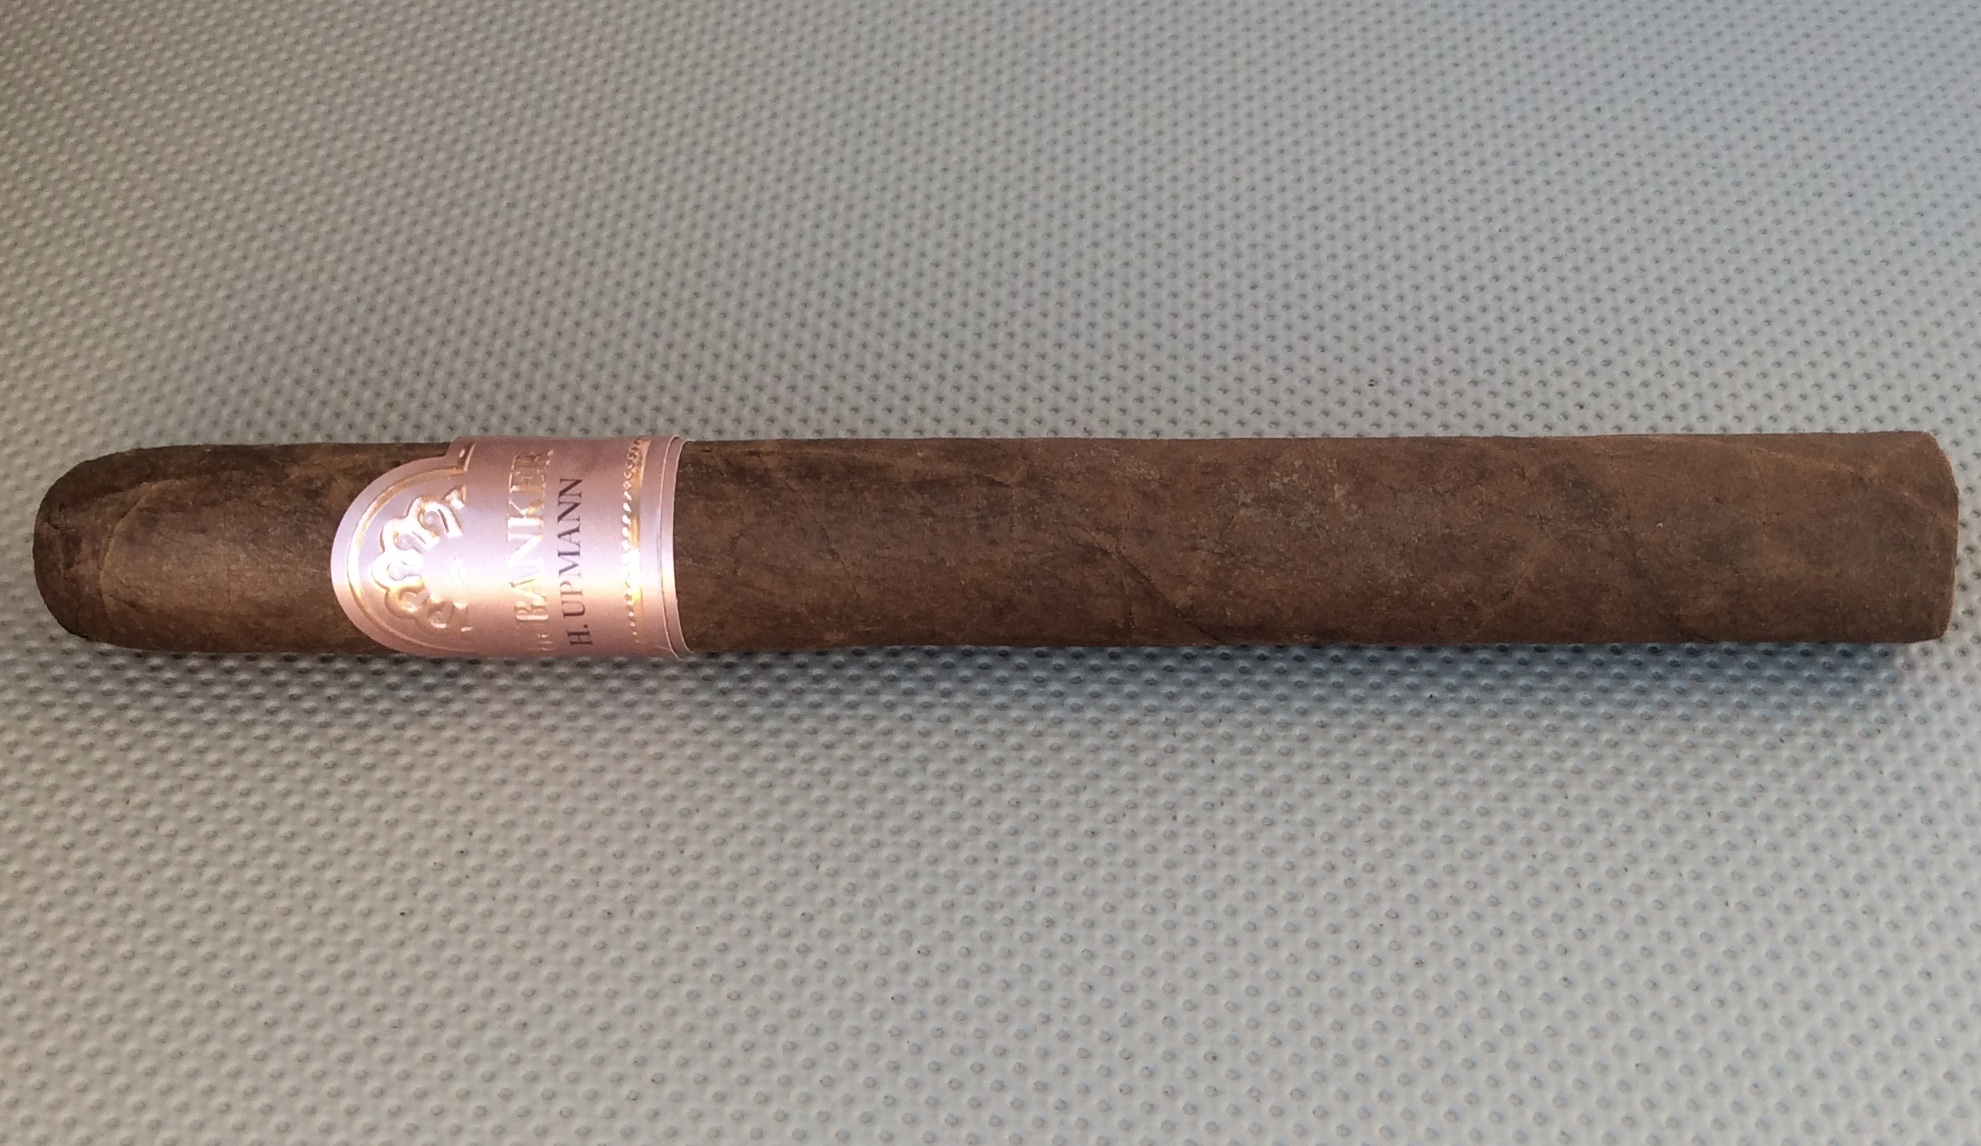 H. Upmann The Banker Ingot Rosé by Altadis U.S.A. - Sleeve Removed